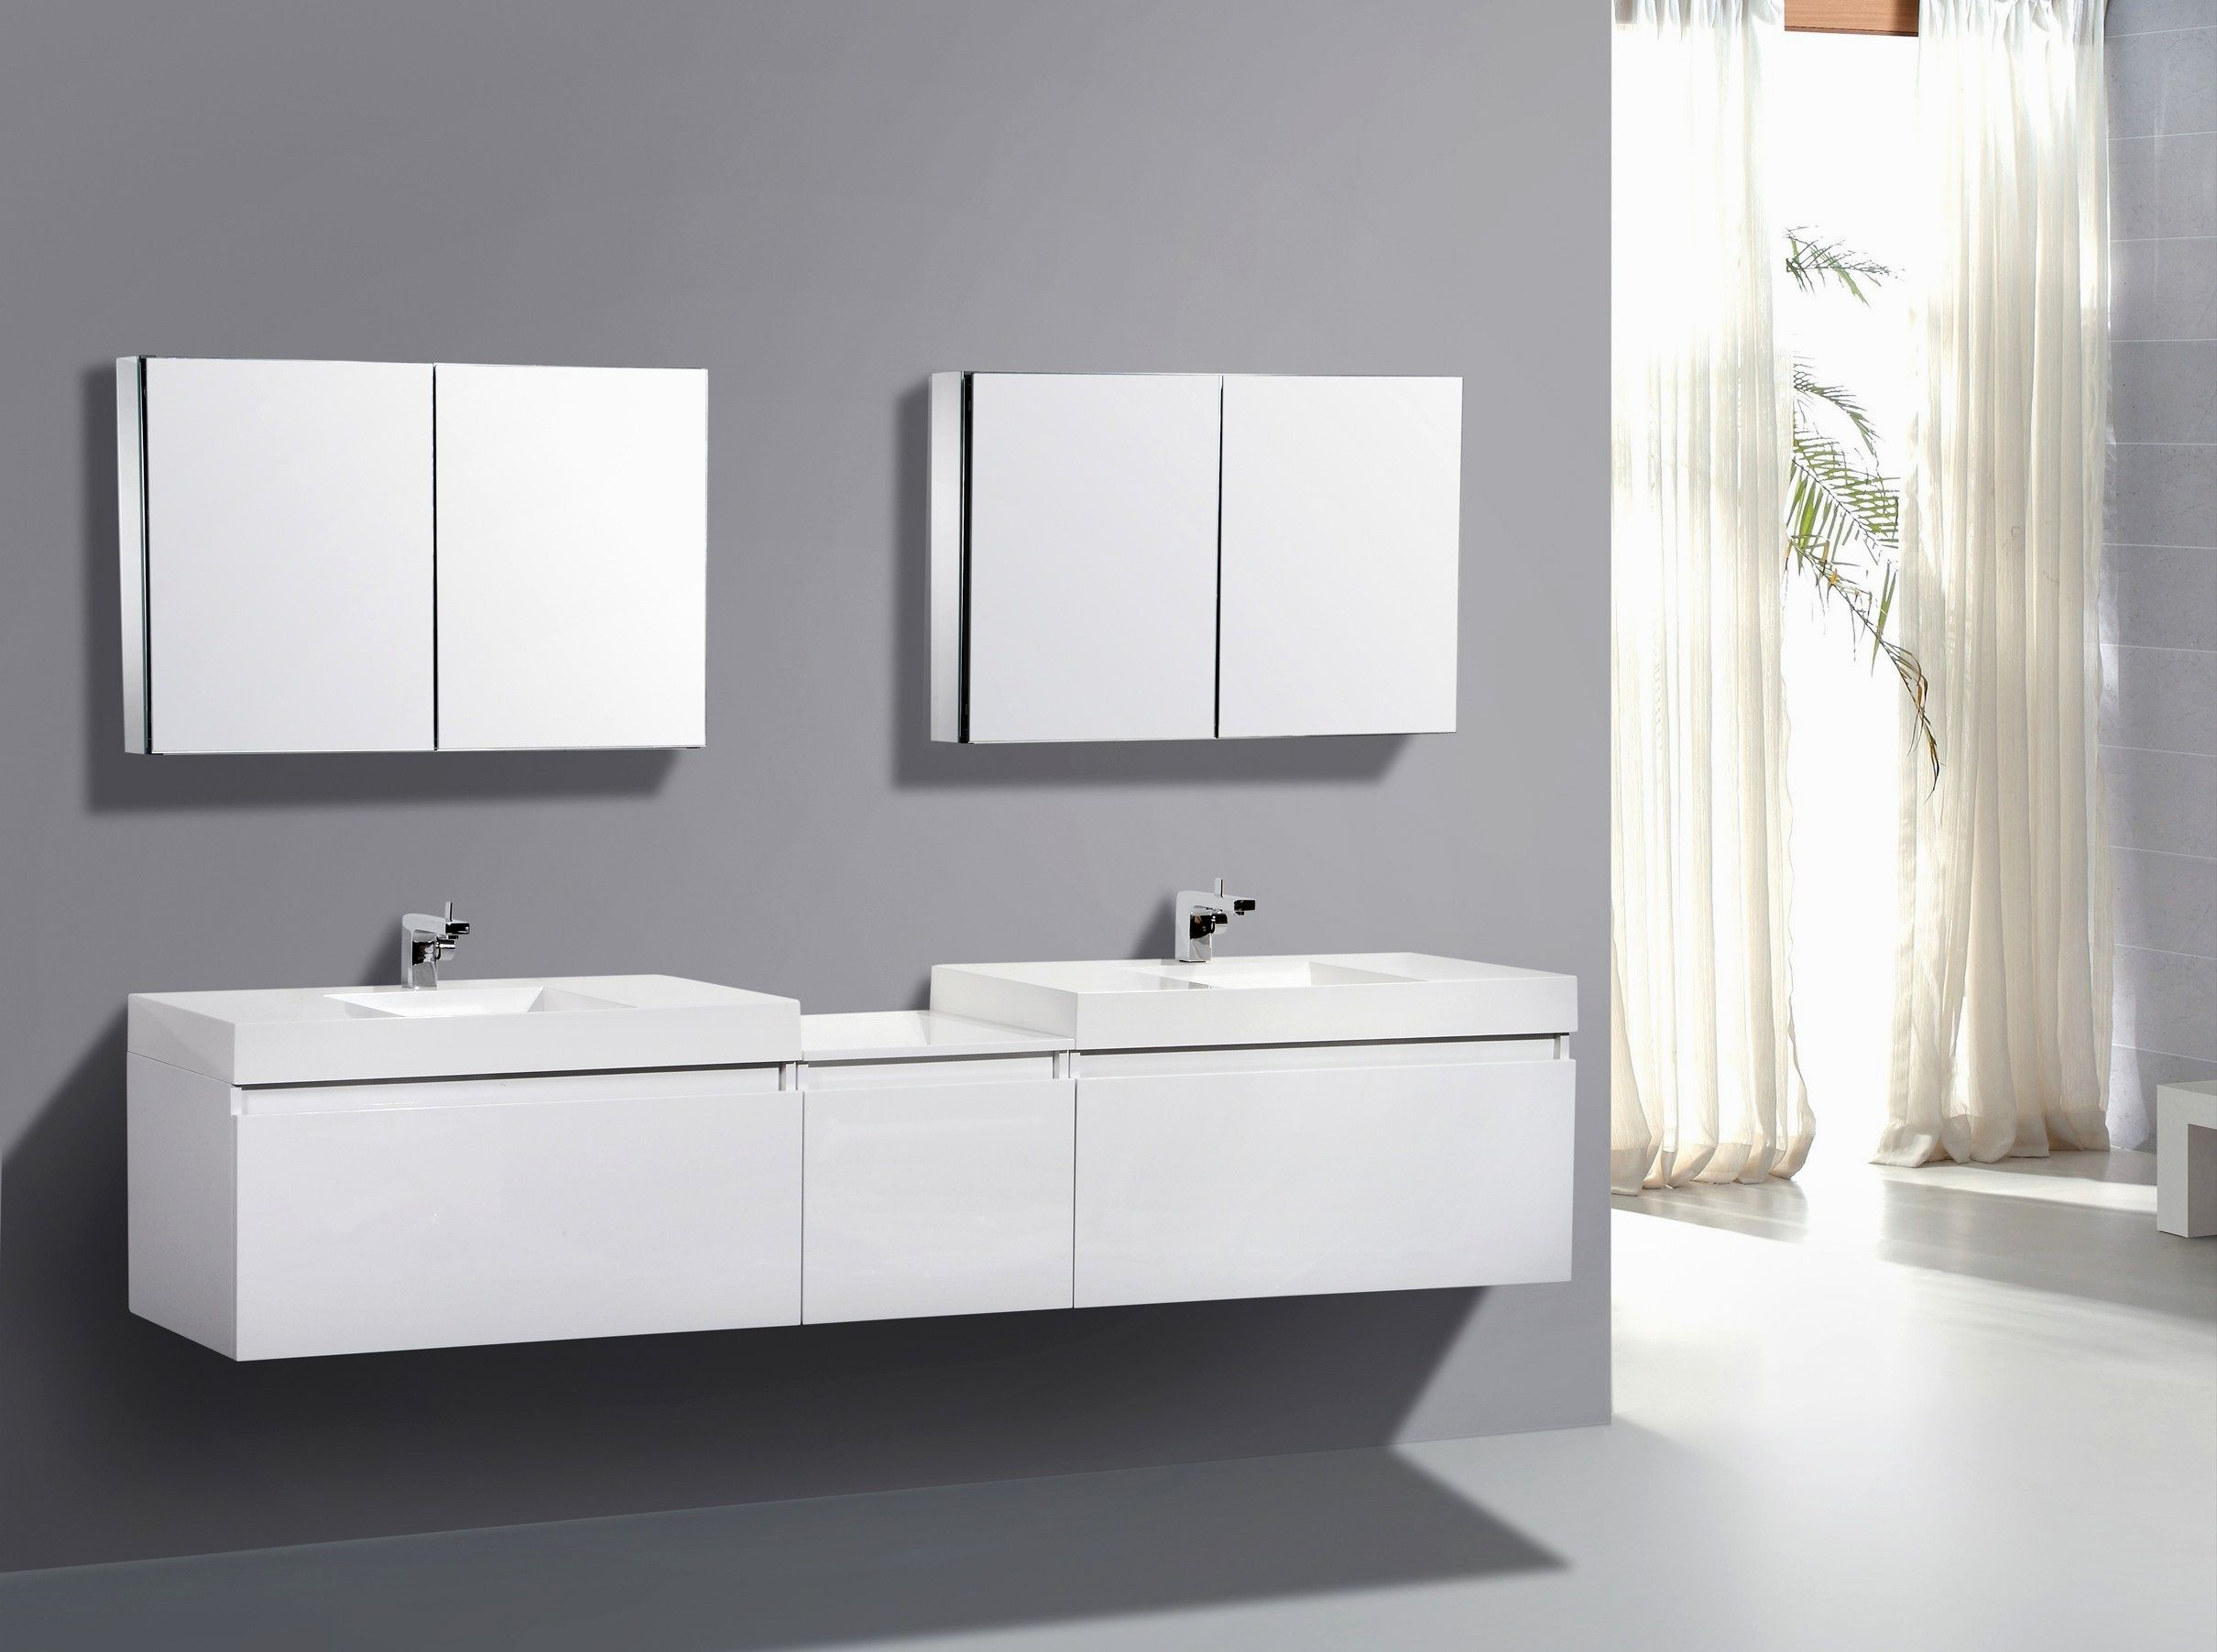 lovely bathroom vanity images concept-Fantastic Bathroom Vanity Images Décor